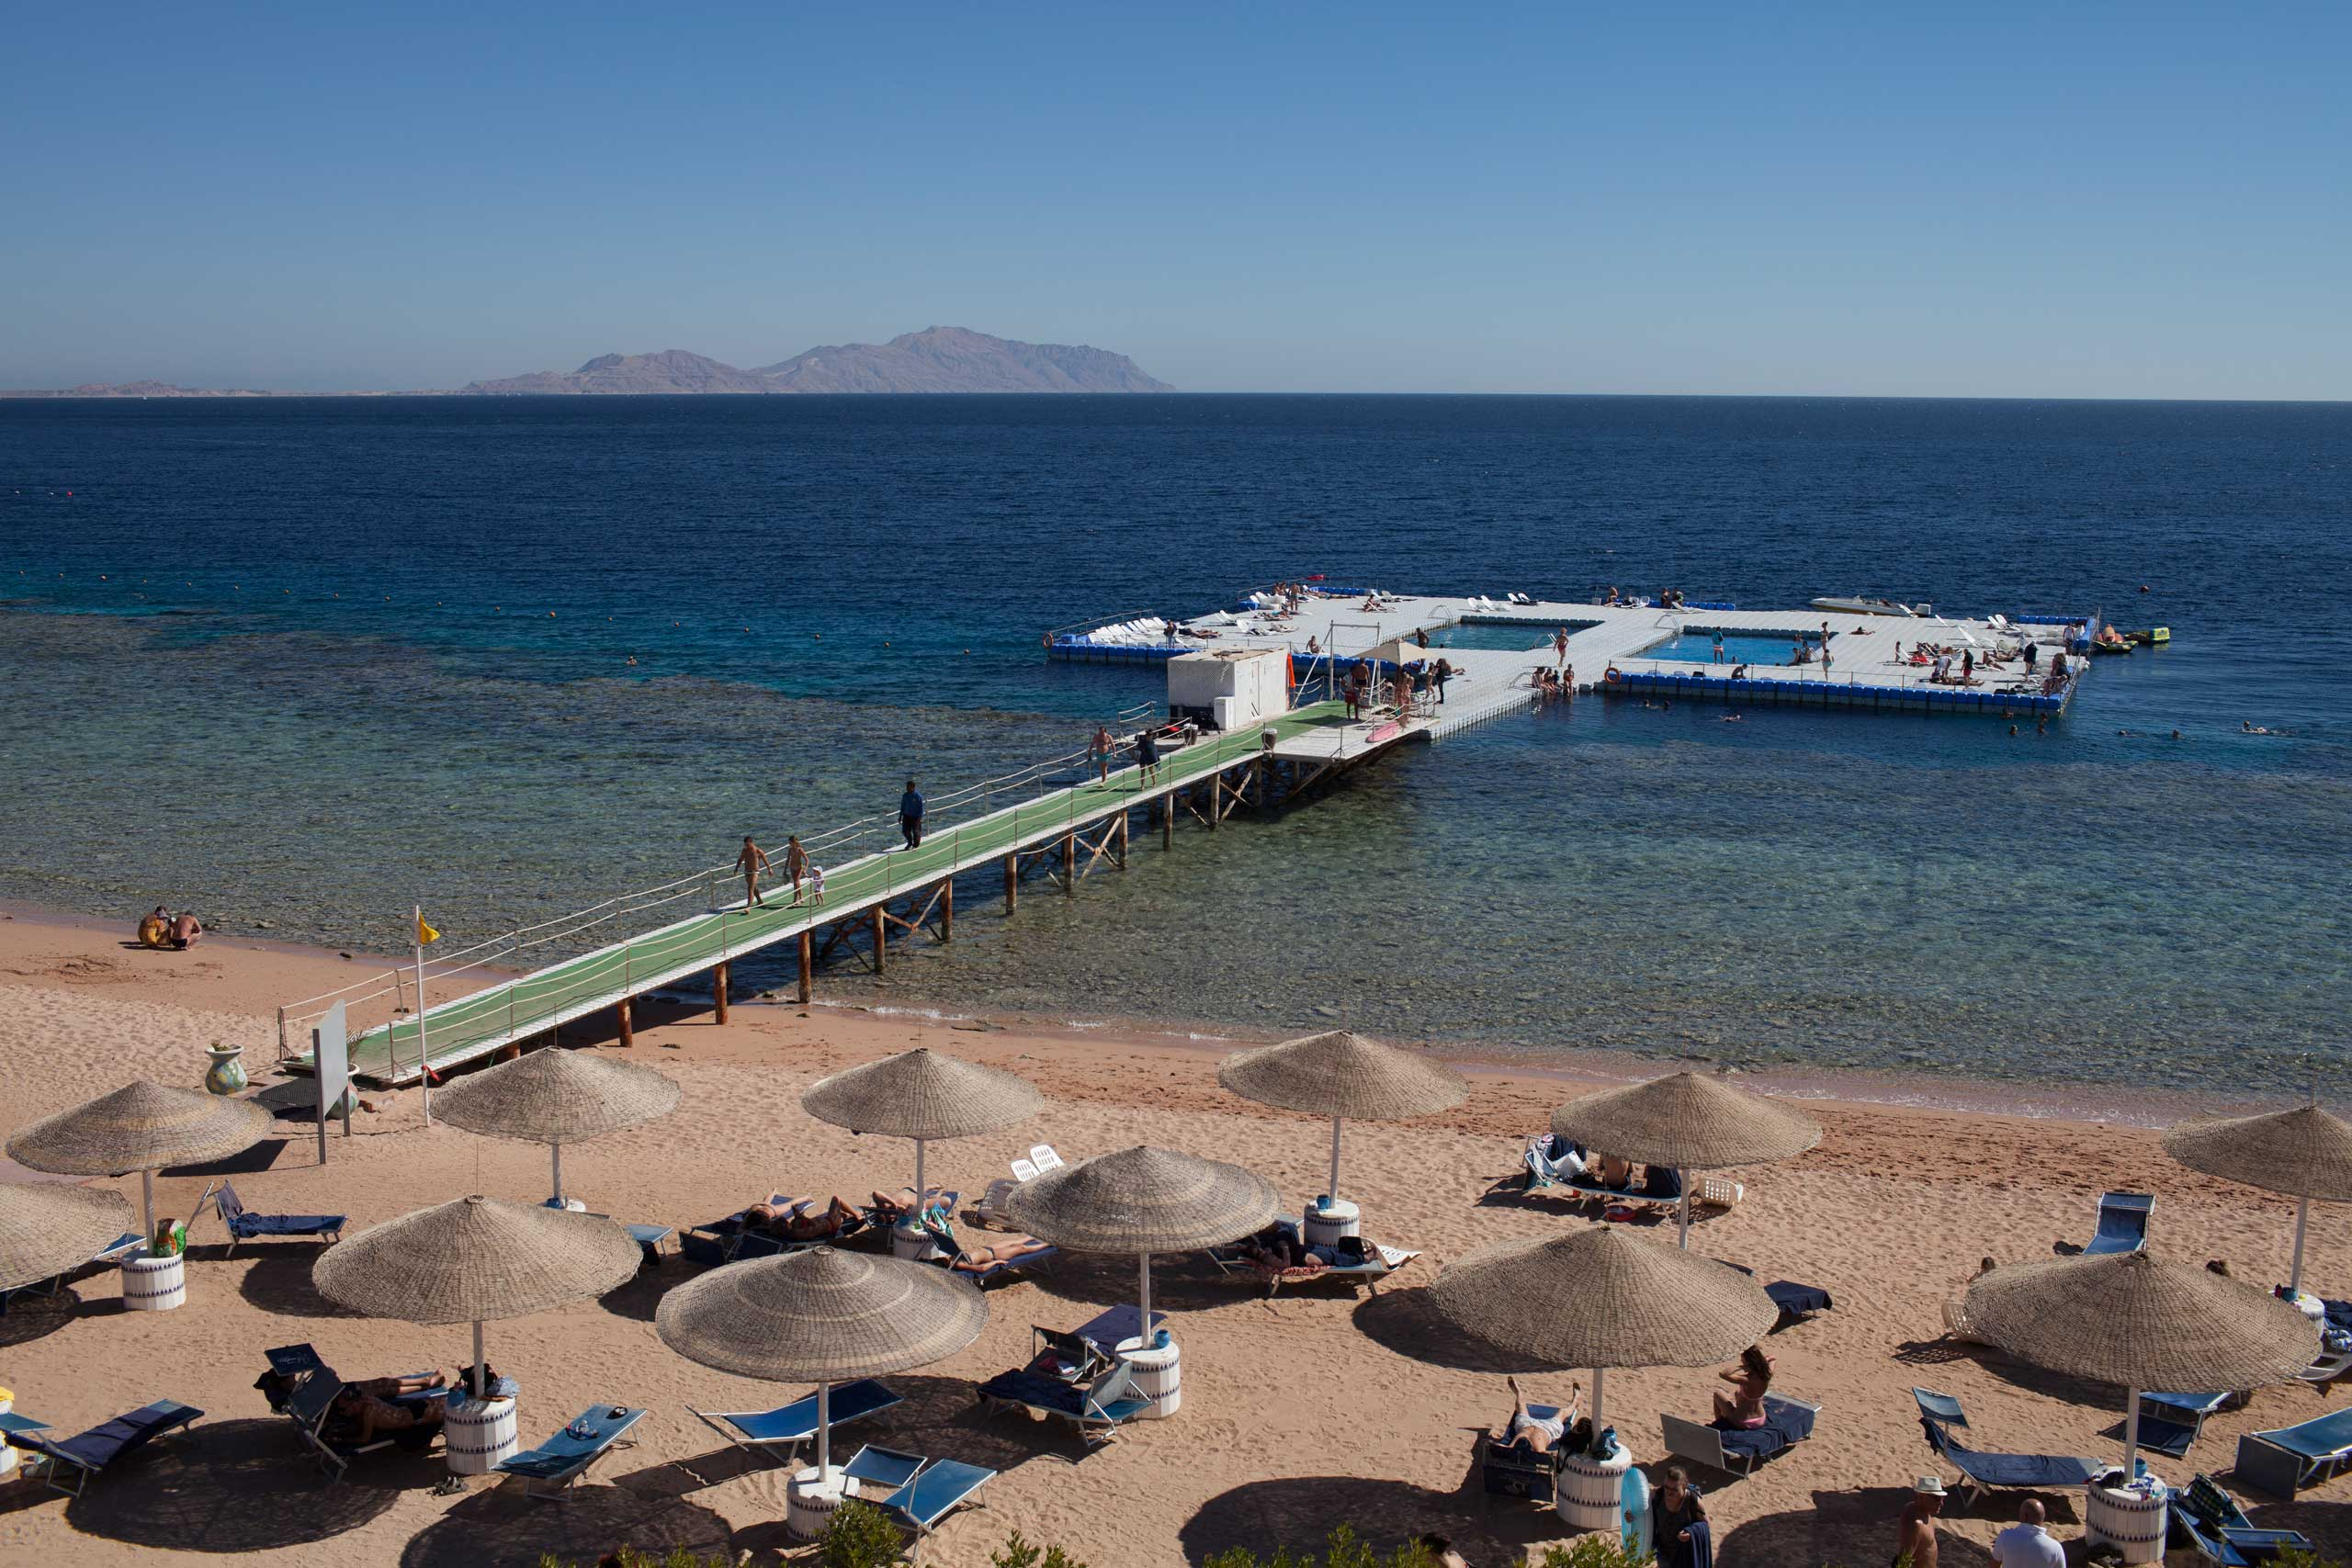 An artificial swimming pool that allows swimmers to enjoy the sea without having mind rocks or corals, in Sharm el Sheikh, Sinai, Jan. 2015.